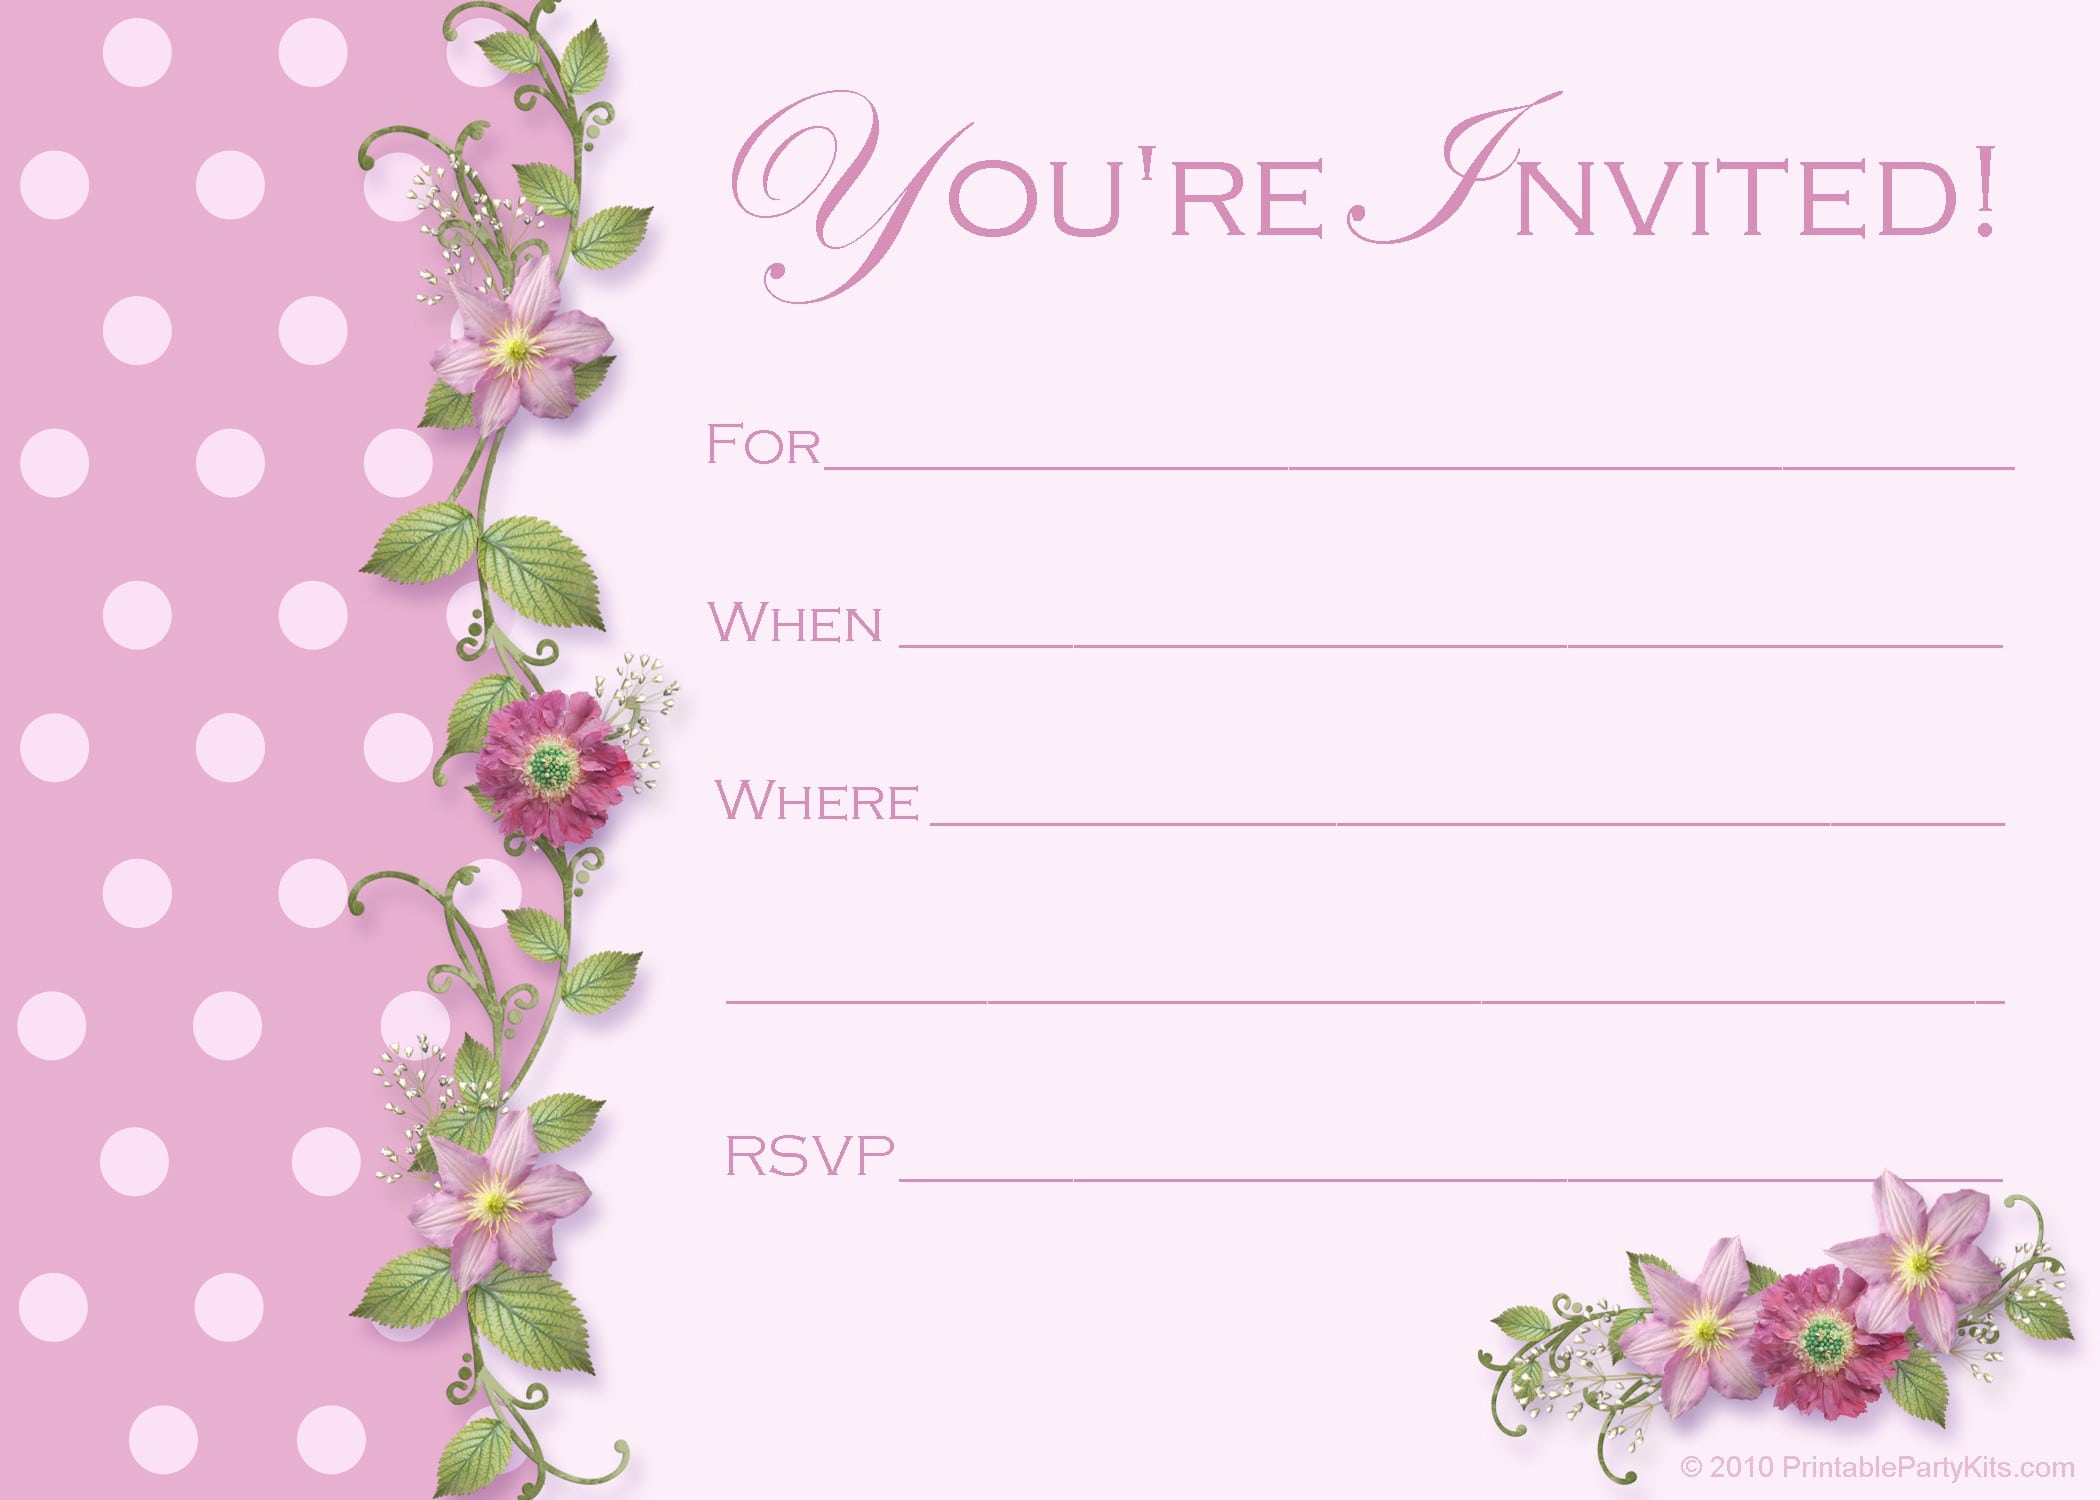 birthday party invitation template target pics photos birthday party invitation templates on um34ko6r